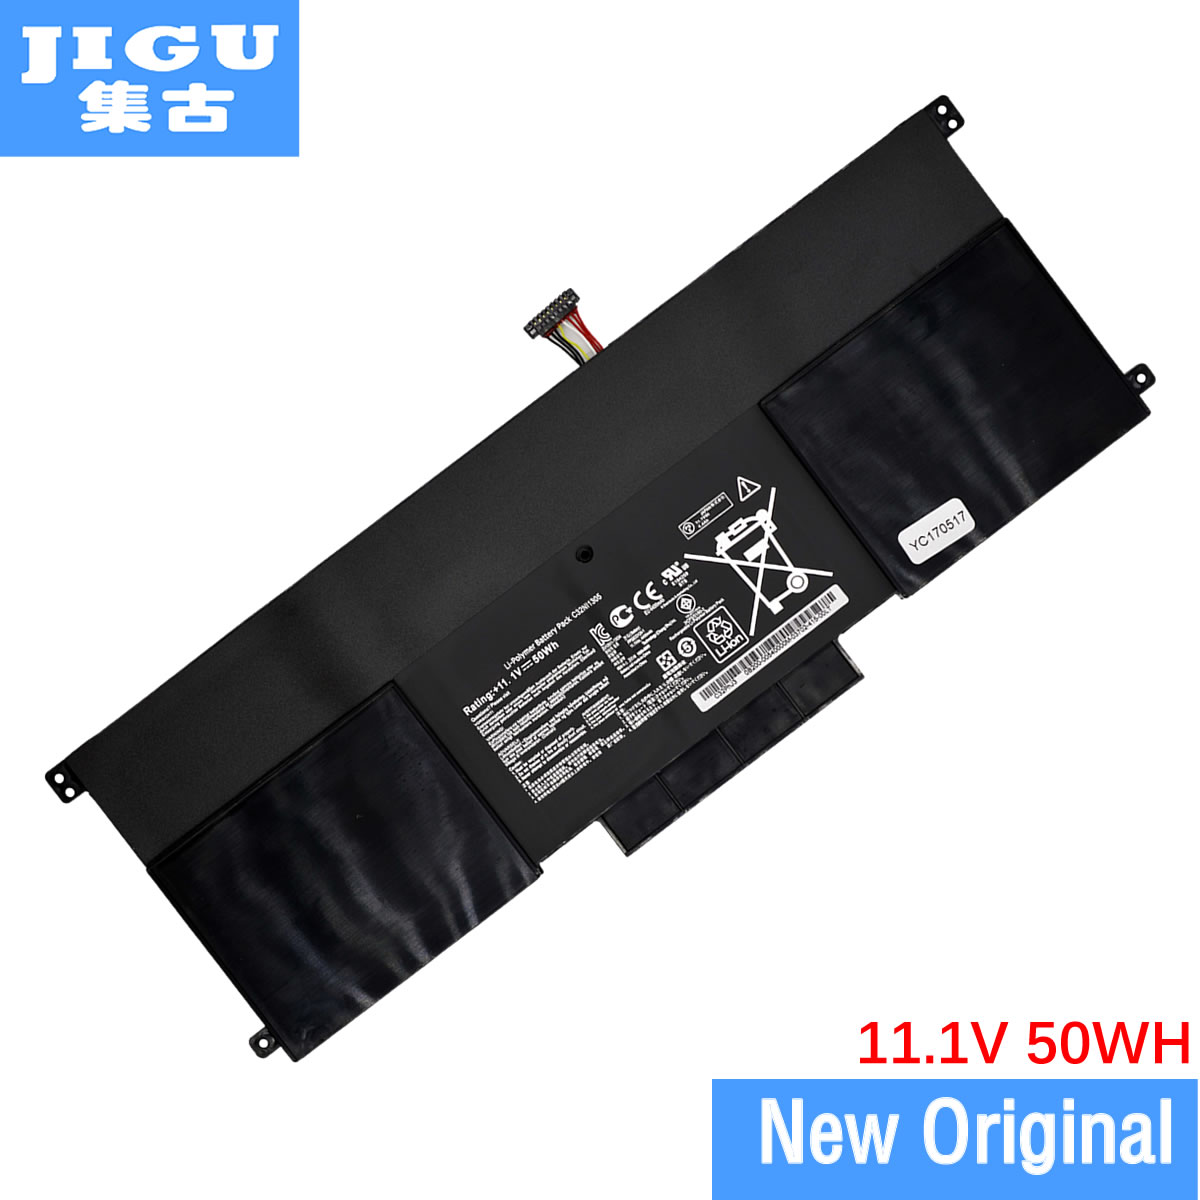 JIGU laptop battery FOR Asus C32N1305 UX301LA for Zenbook UX301L UX301LA UX301LA-C4003H UX301LA UX301LA4500 jigu laptop battery for dell 8858x 8p3yx 911md vostro 3460 3560 latitude e6120 e6420 e6520 4400mah